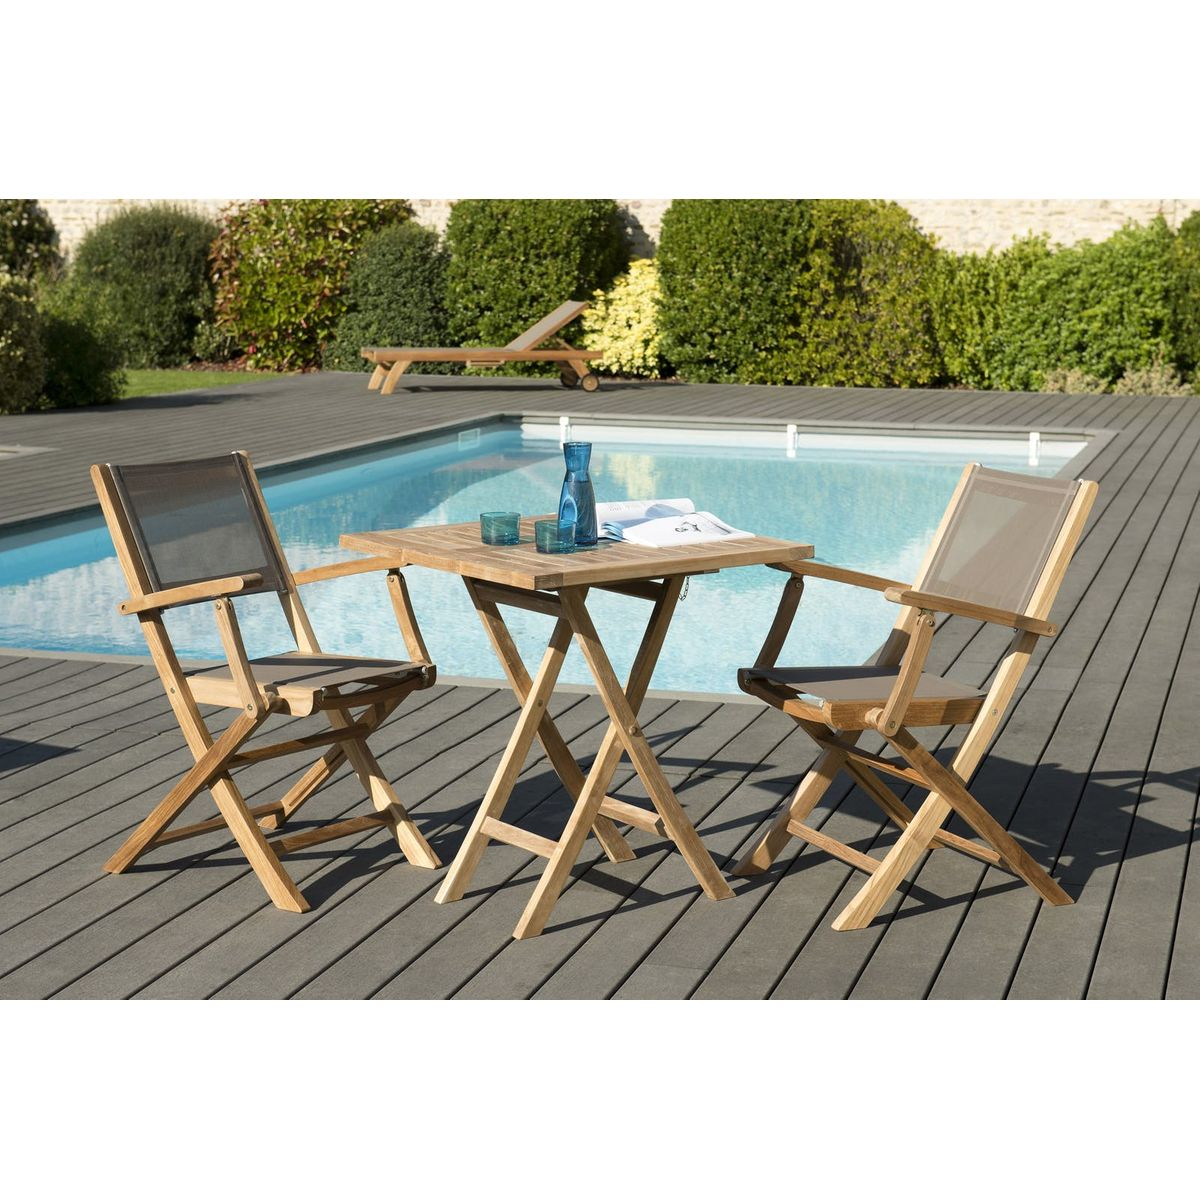 Salon De Jardin Bois De Teck Table Carree Pliante 70x70cm 2